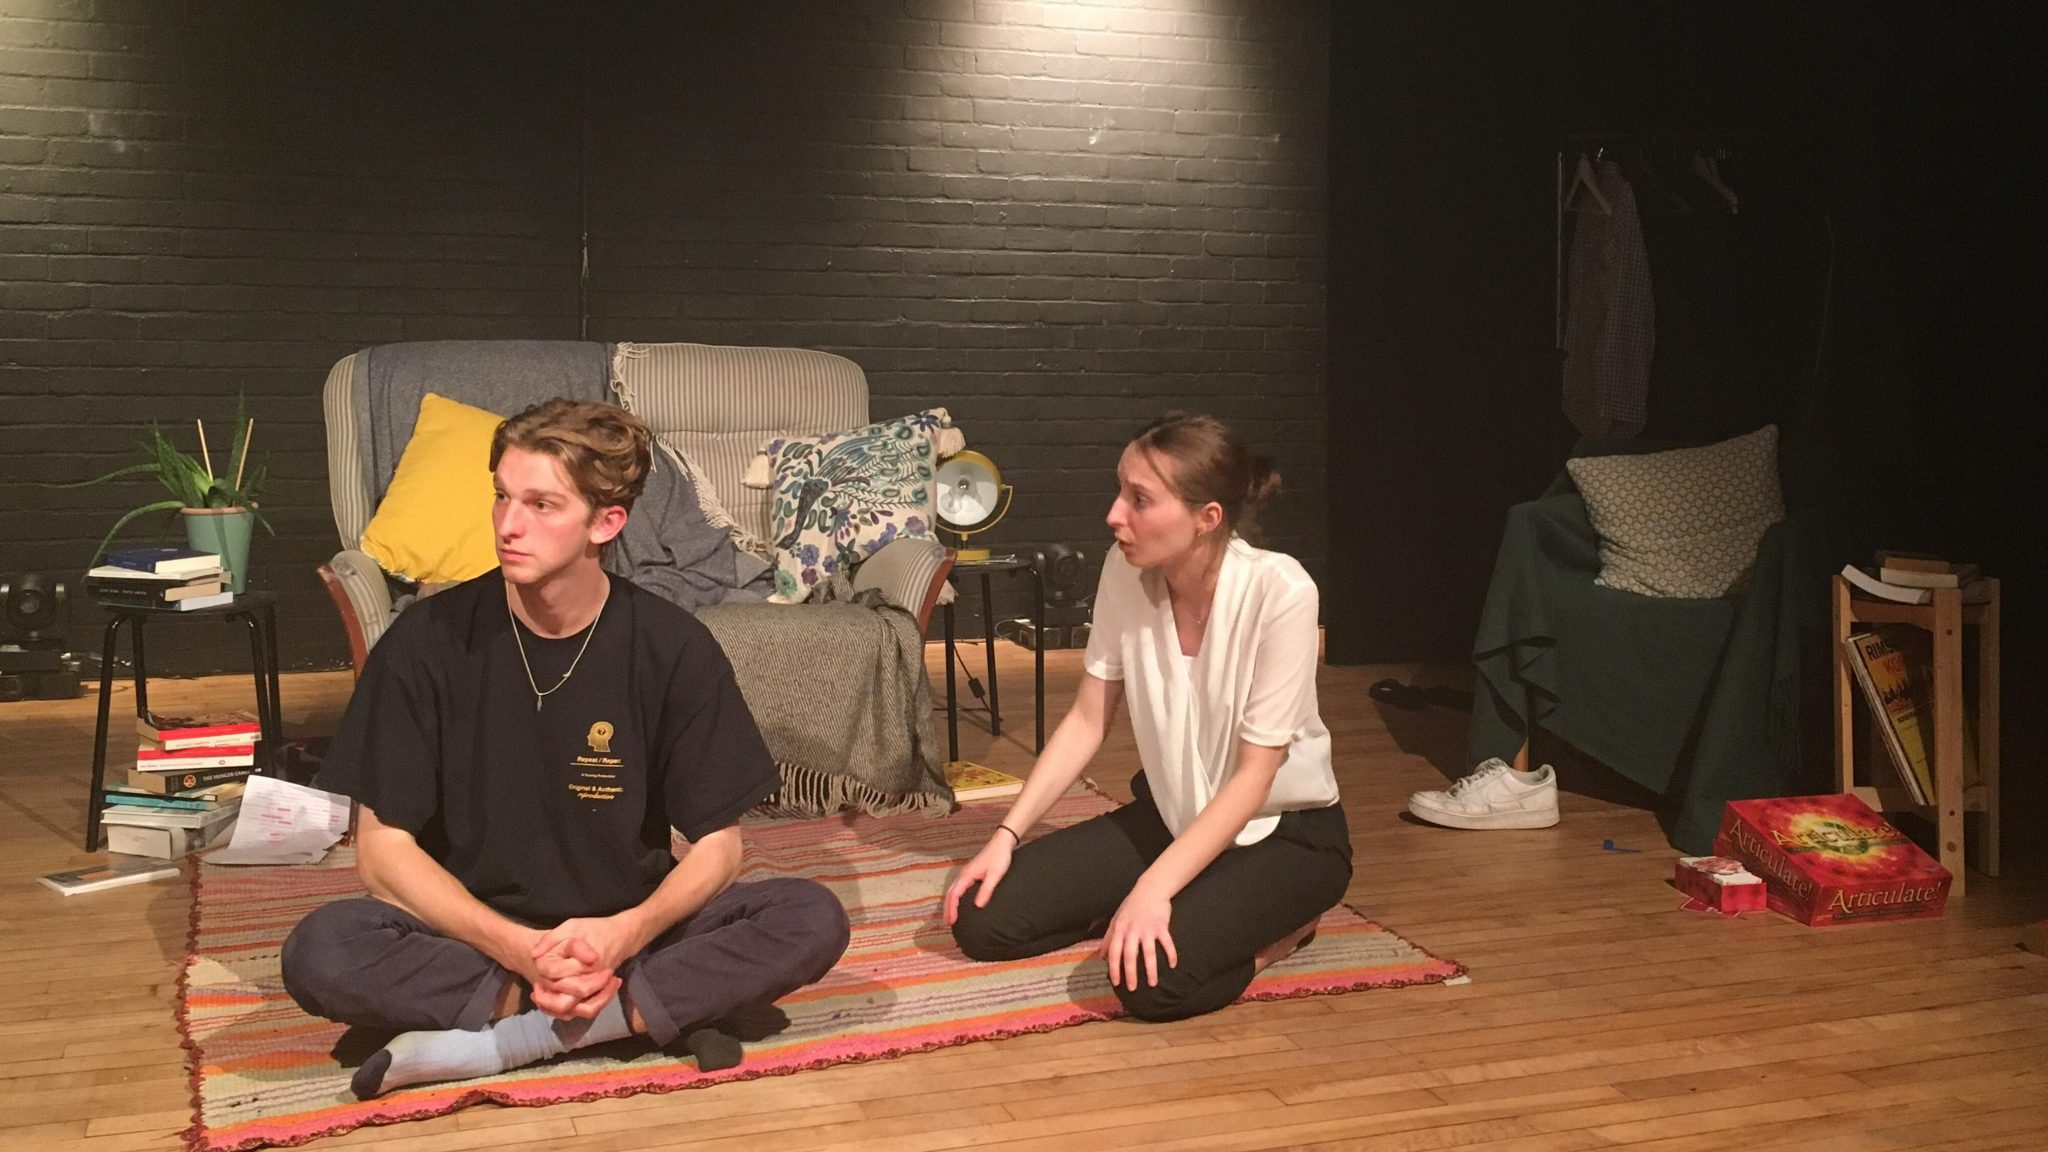 A young woman and man sitting on the floor in a living room; the man looks off to the side and the woman is looking at him